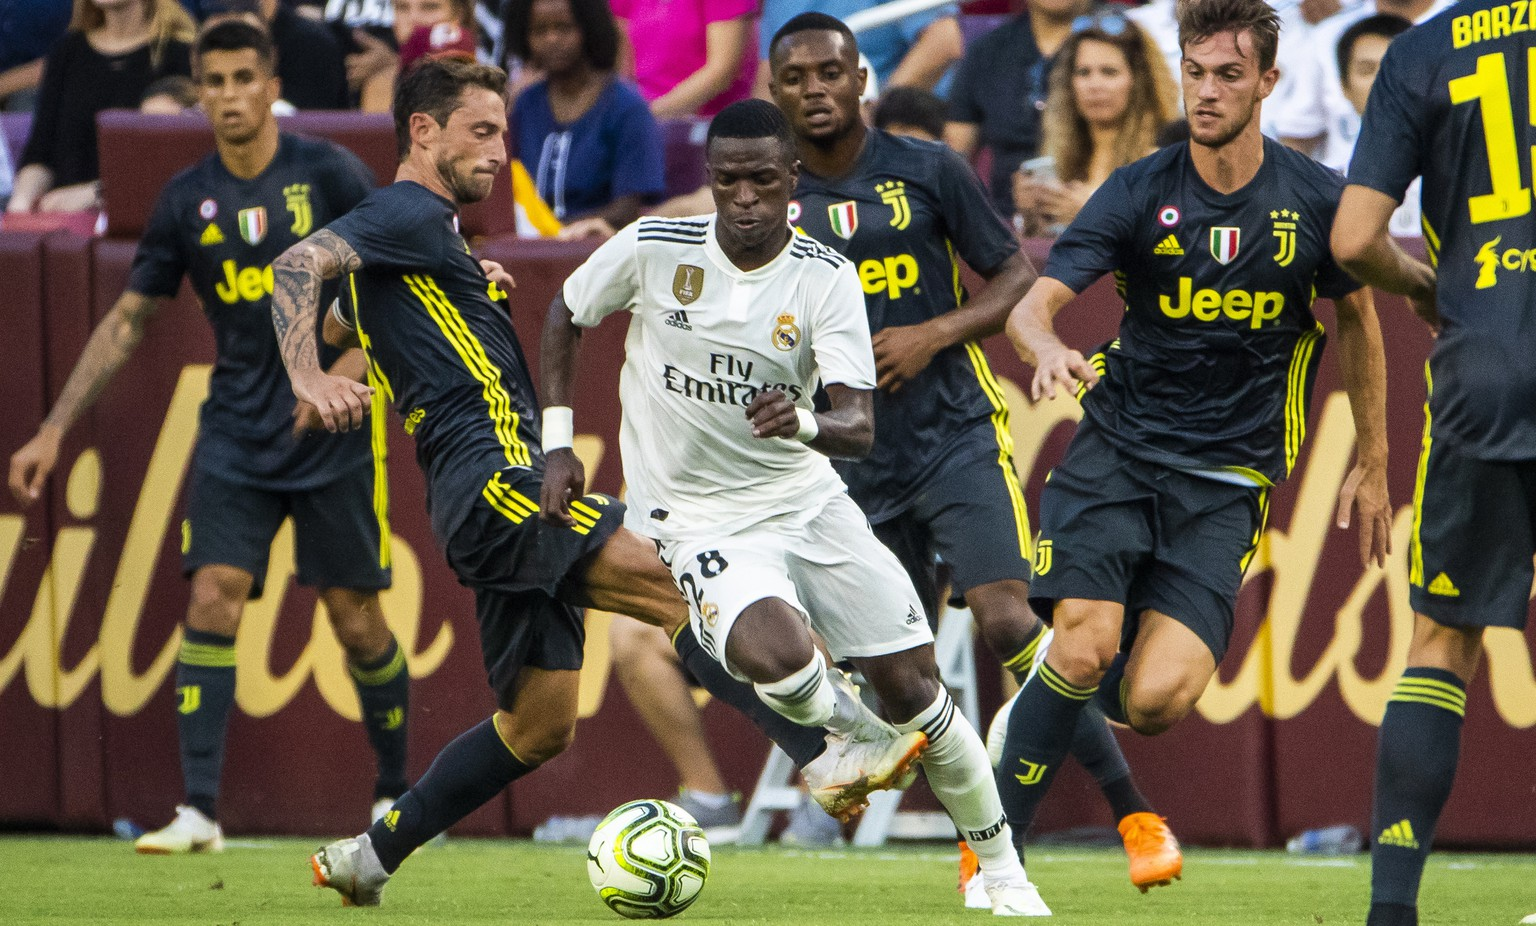 epa06928035 Read Madrid forward Vinicius Junior (C) drives through Juventus players during the second half of the International Champions Cup soccer match between Real Madrid and Juventus at FedExField in Landover, Maryland, USA, 04 August 2018.  EPA/JIM LO SCALZO